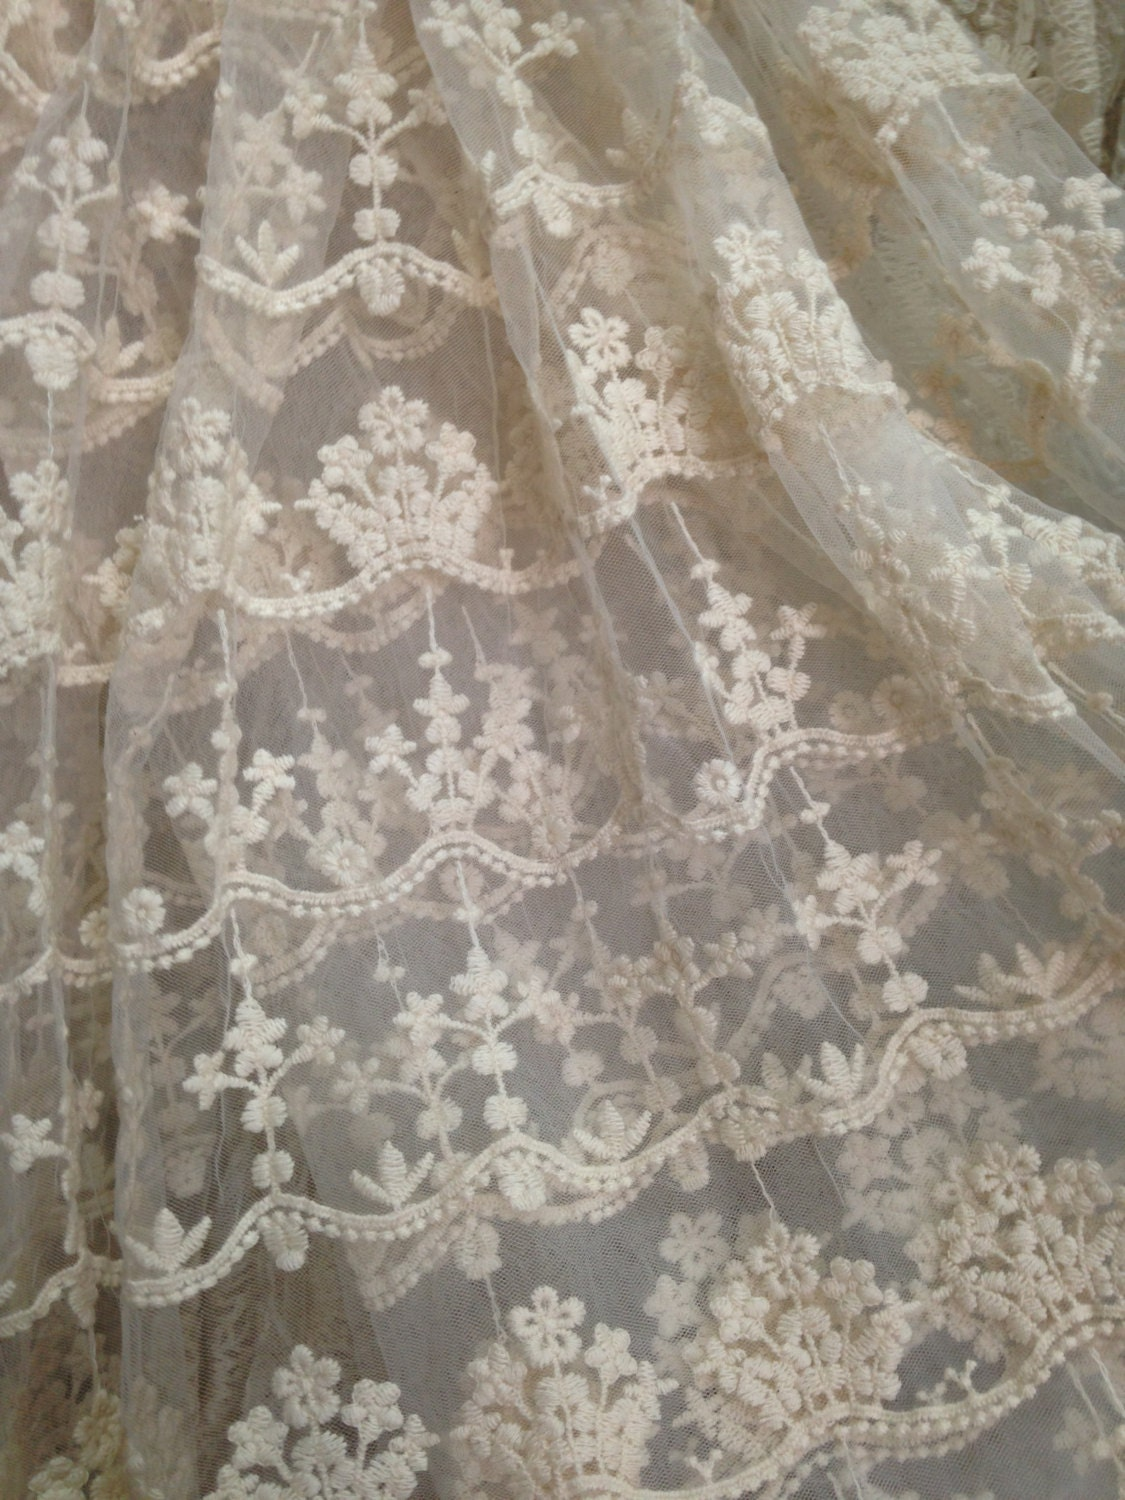 Ivory Embroidered Gauze Lace Fabric Retro Floral Lace Fabric